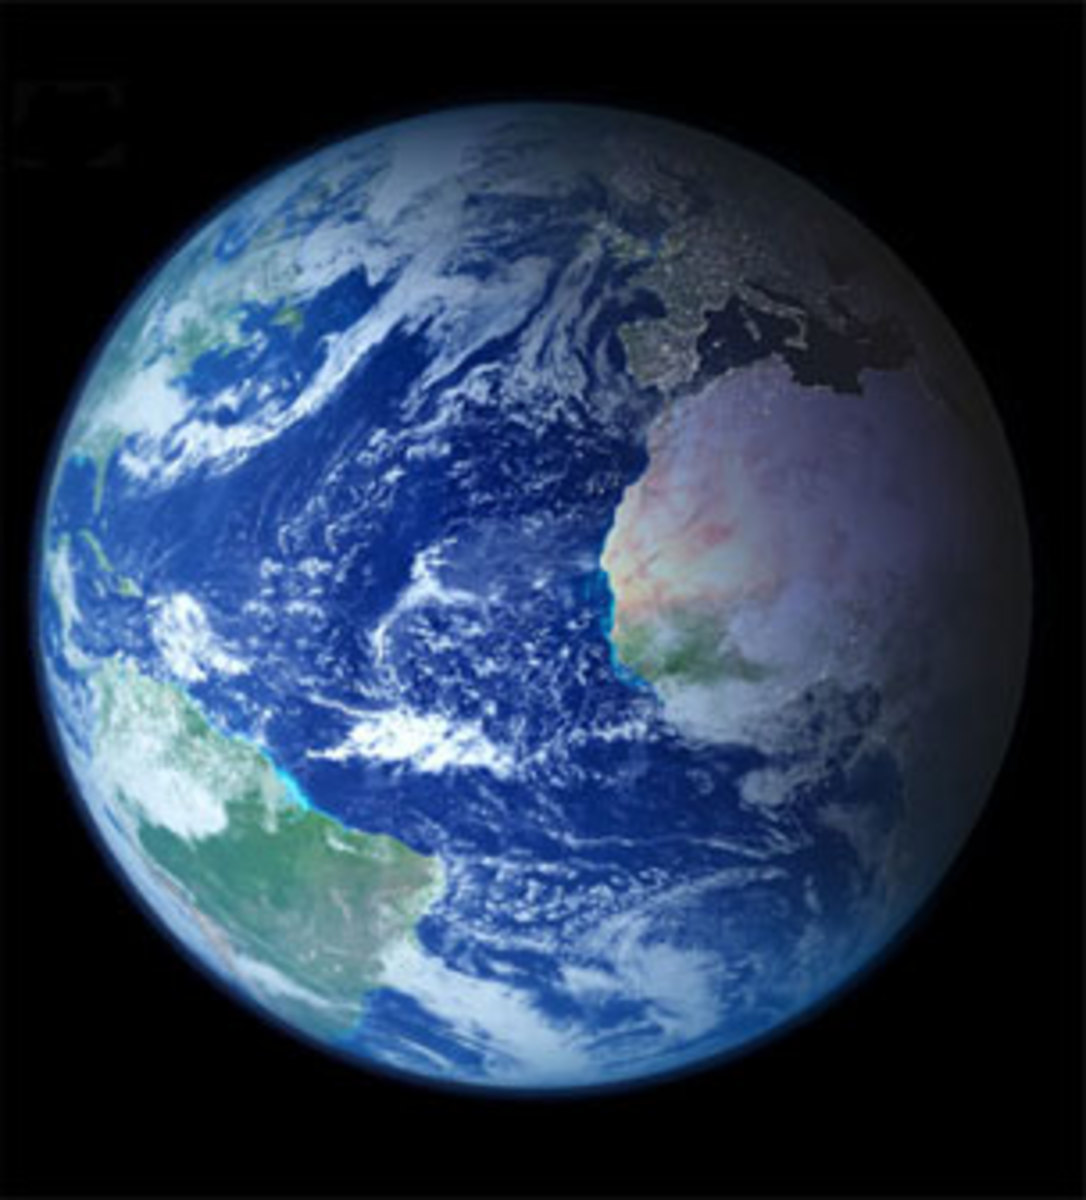 The planet Earth has been shown by our own astronomers and scientists to be the most abundant life source in our known galaxy, is it any wonder other civilizations have fought to control it for eons?